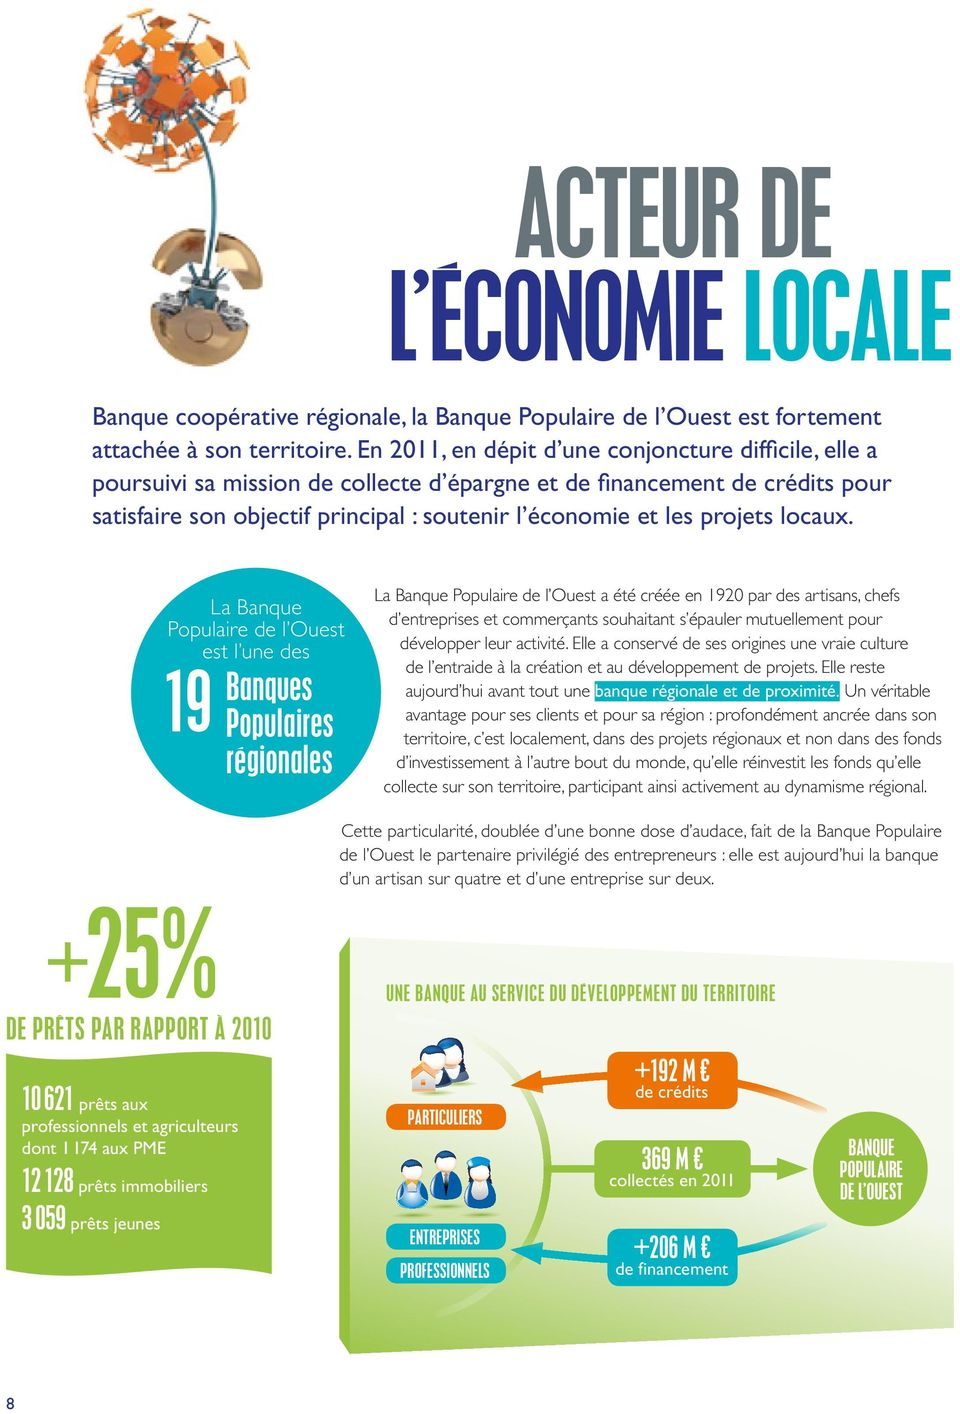 projets locaux.